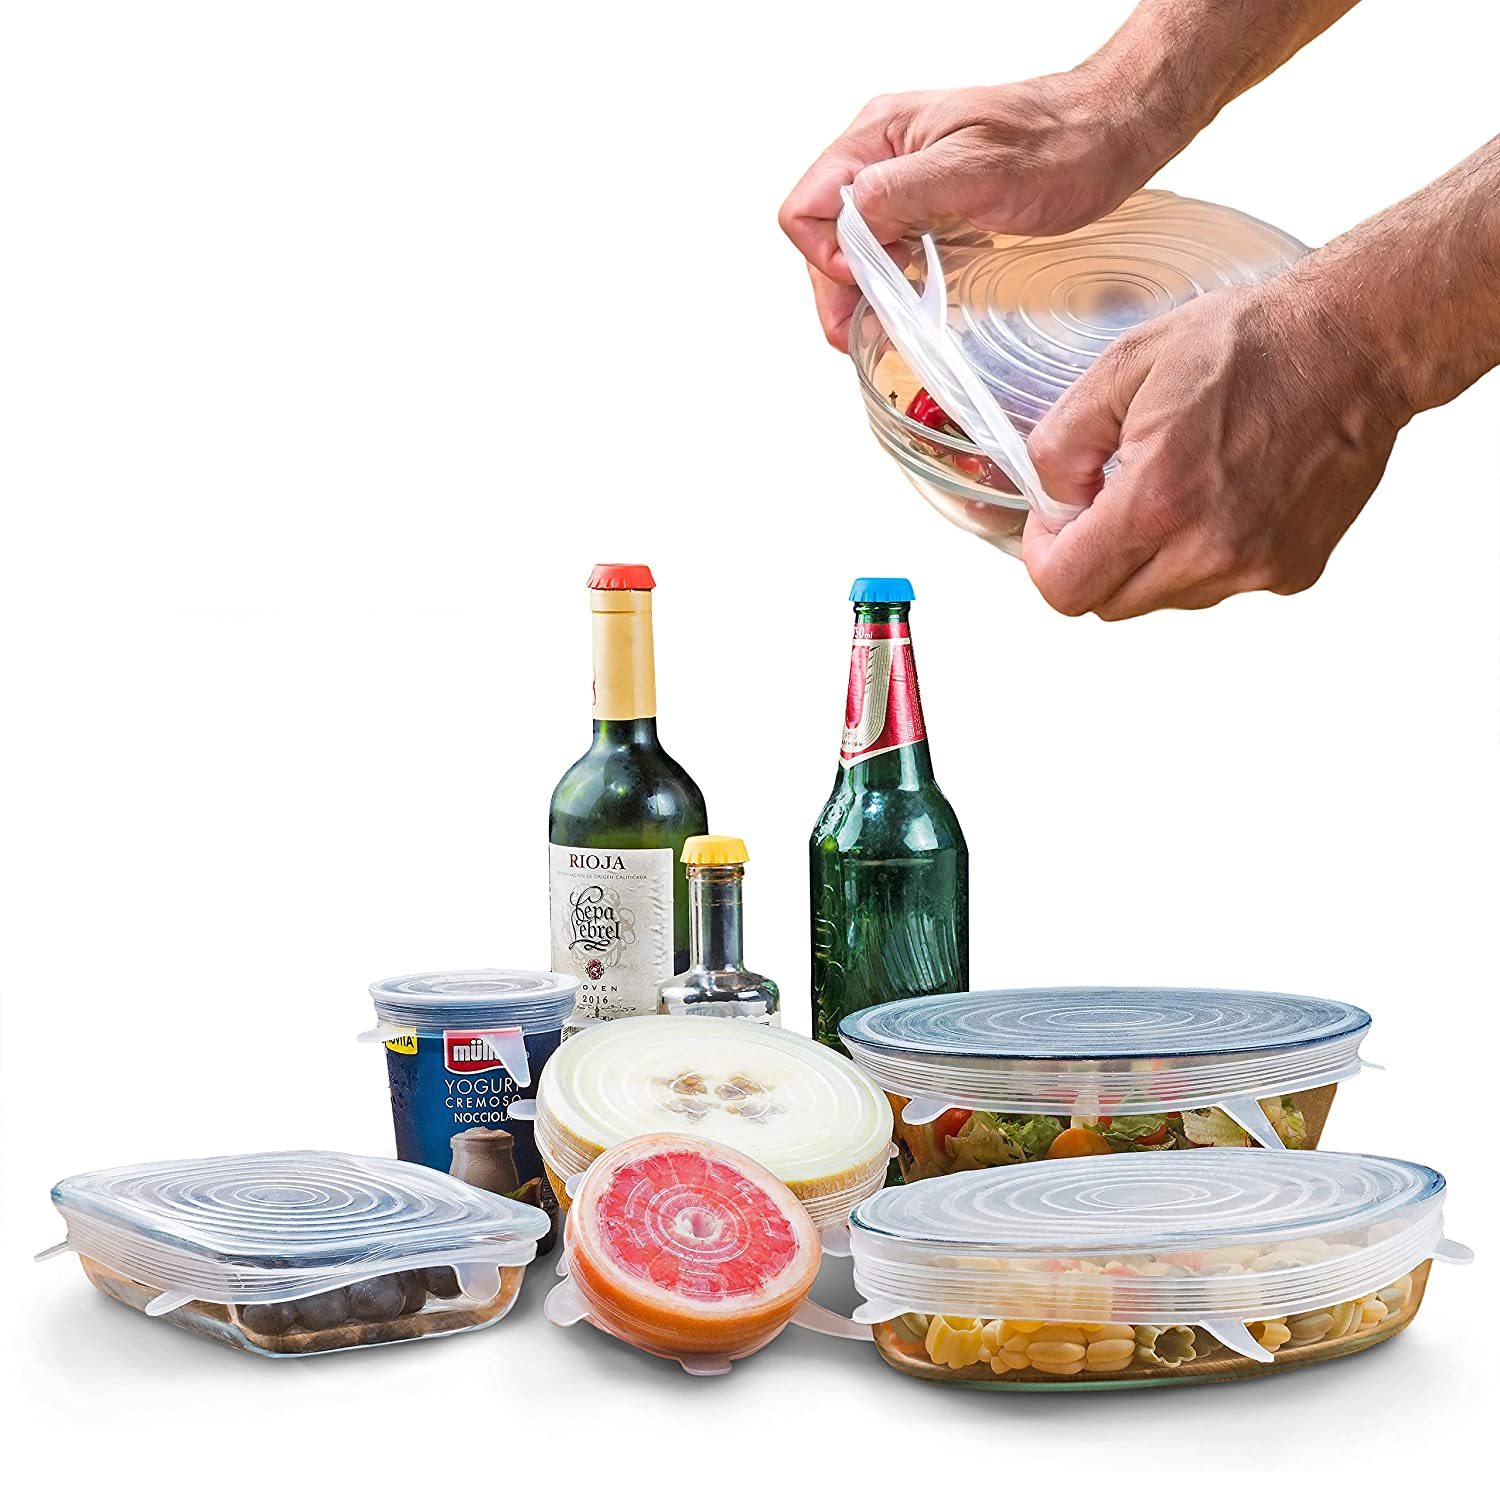 Reusable SILICONE STRETCH LIDS Set - 9 pack - No More Cling Wrap - Universal Expandable ECO-Friendly Ultimate Instalids, Clear Covers Stretch & Seal Various Sizes Bowls, Jars, Cups, Cans or Containers Cucina Carina CCSL1